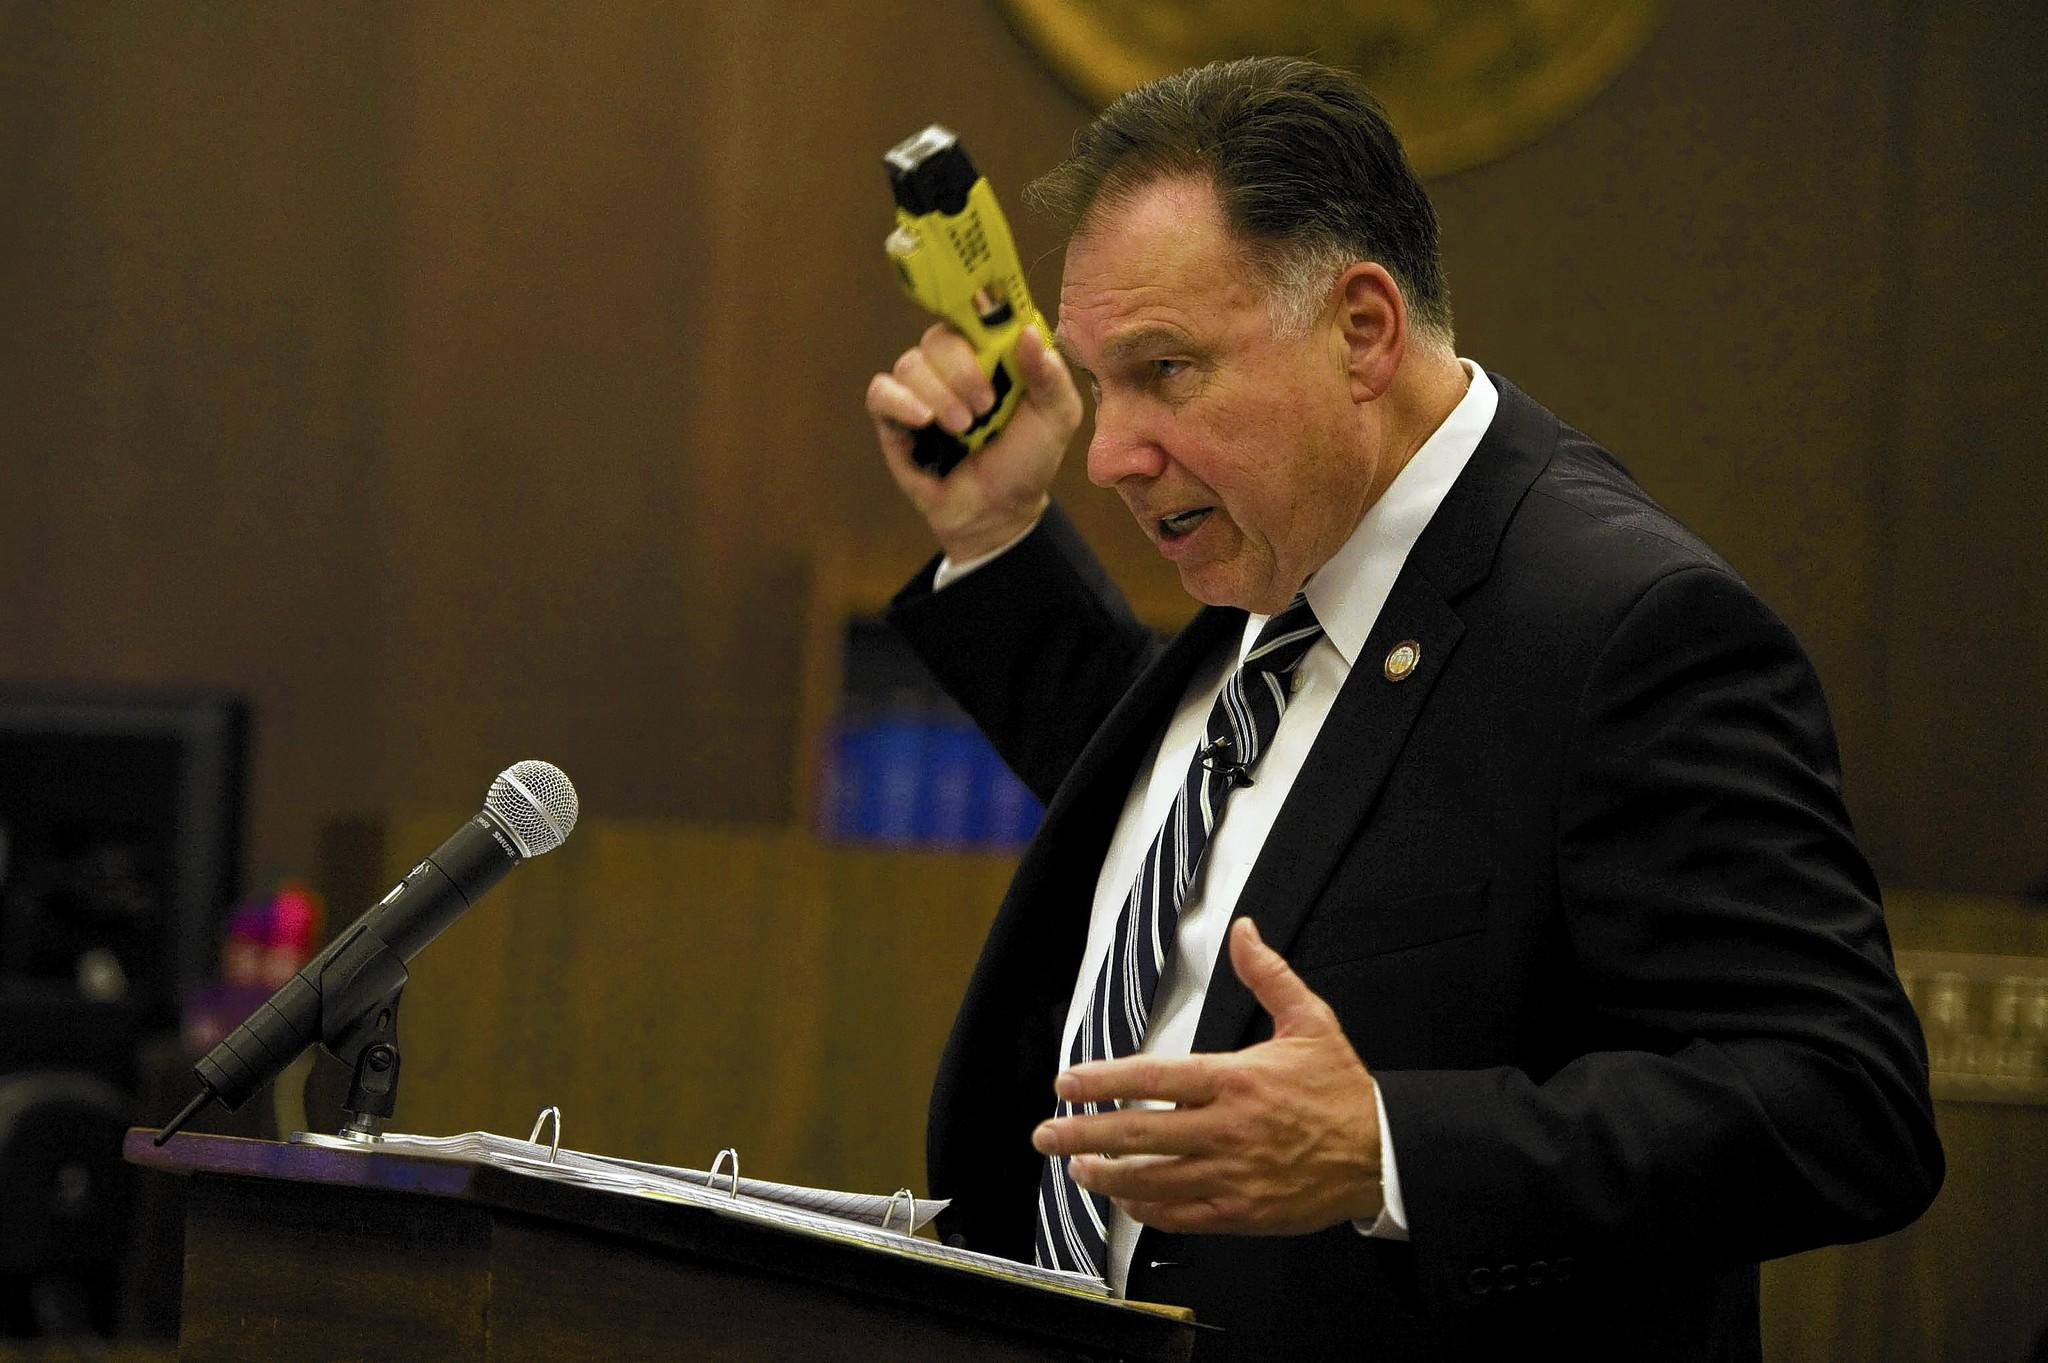 During closing arguments in the trial of two former Fullerton police officers in the death of a mentally ill homeless man, Orange County Dist. Atty. Tony Rackauckas holds a Taser similar to the one used by one of the officers as a blunt-force weapon.